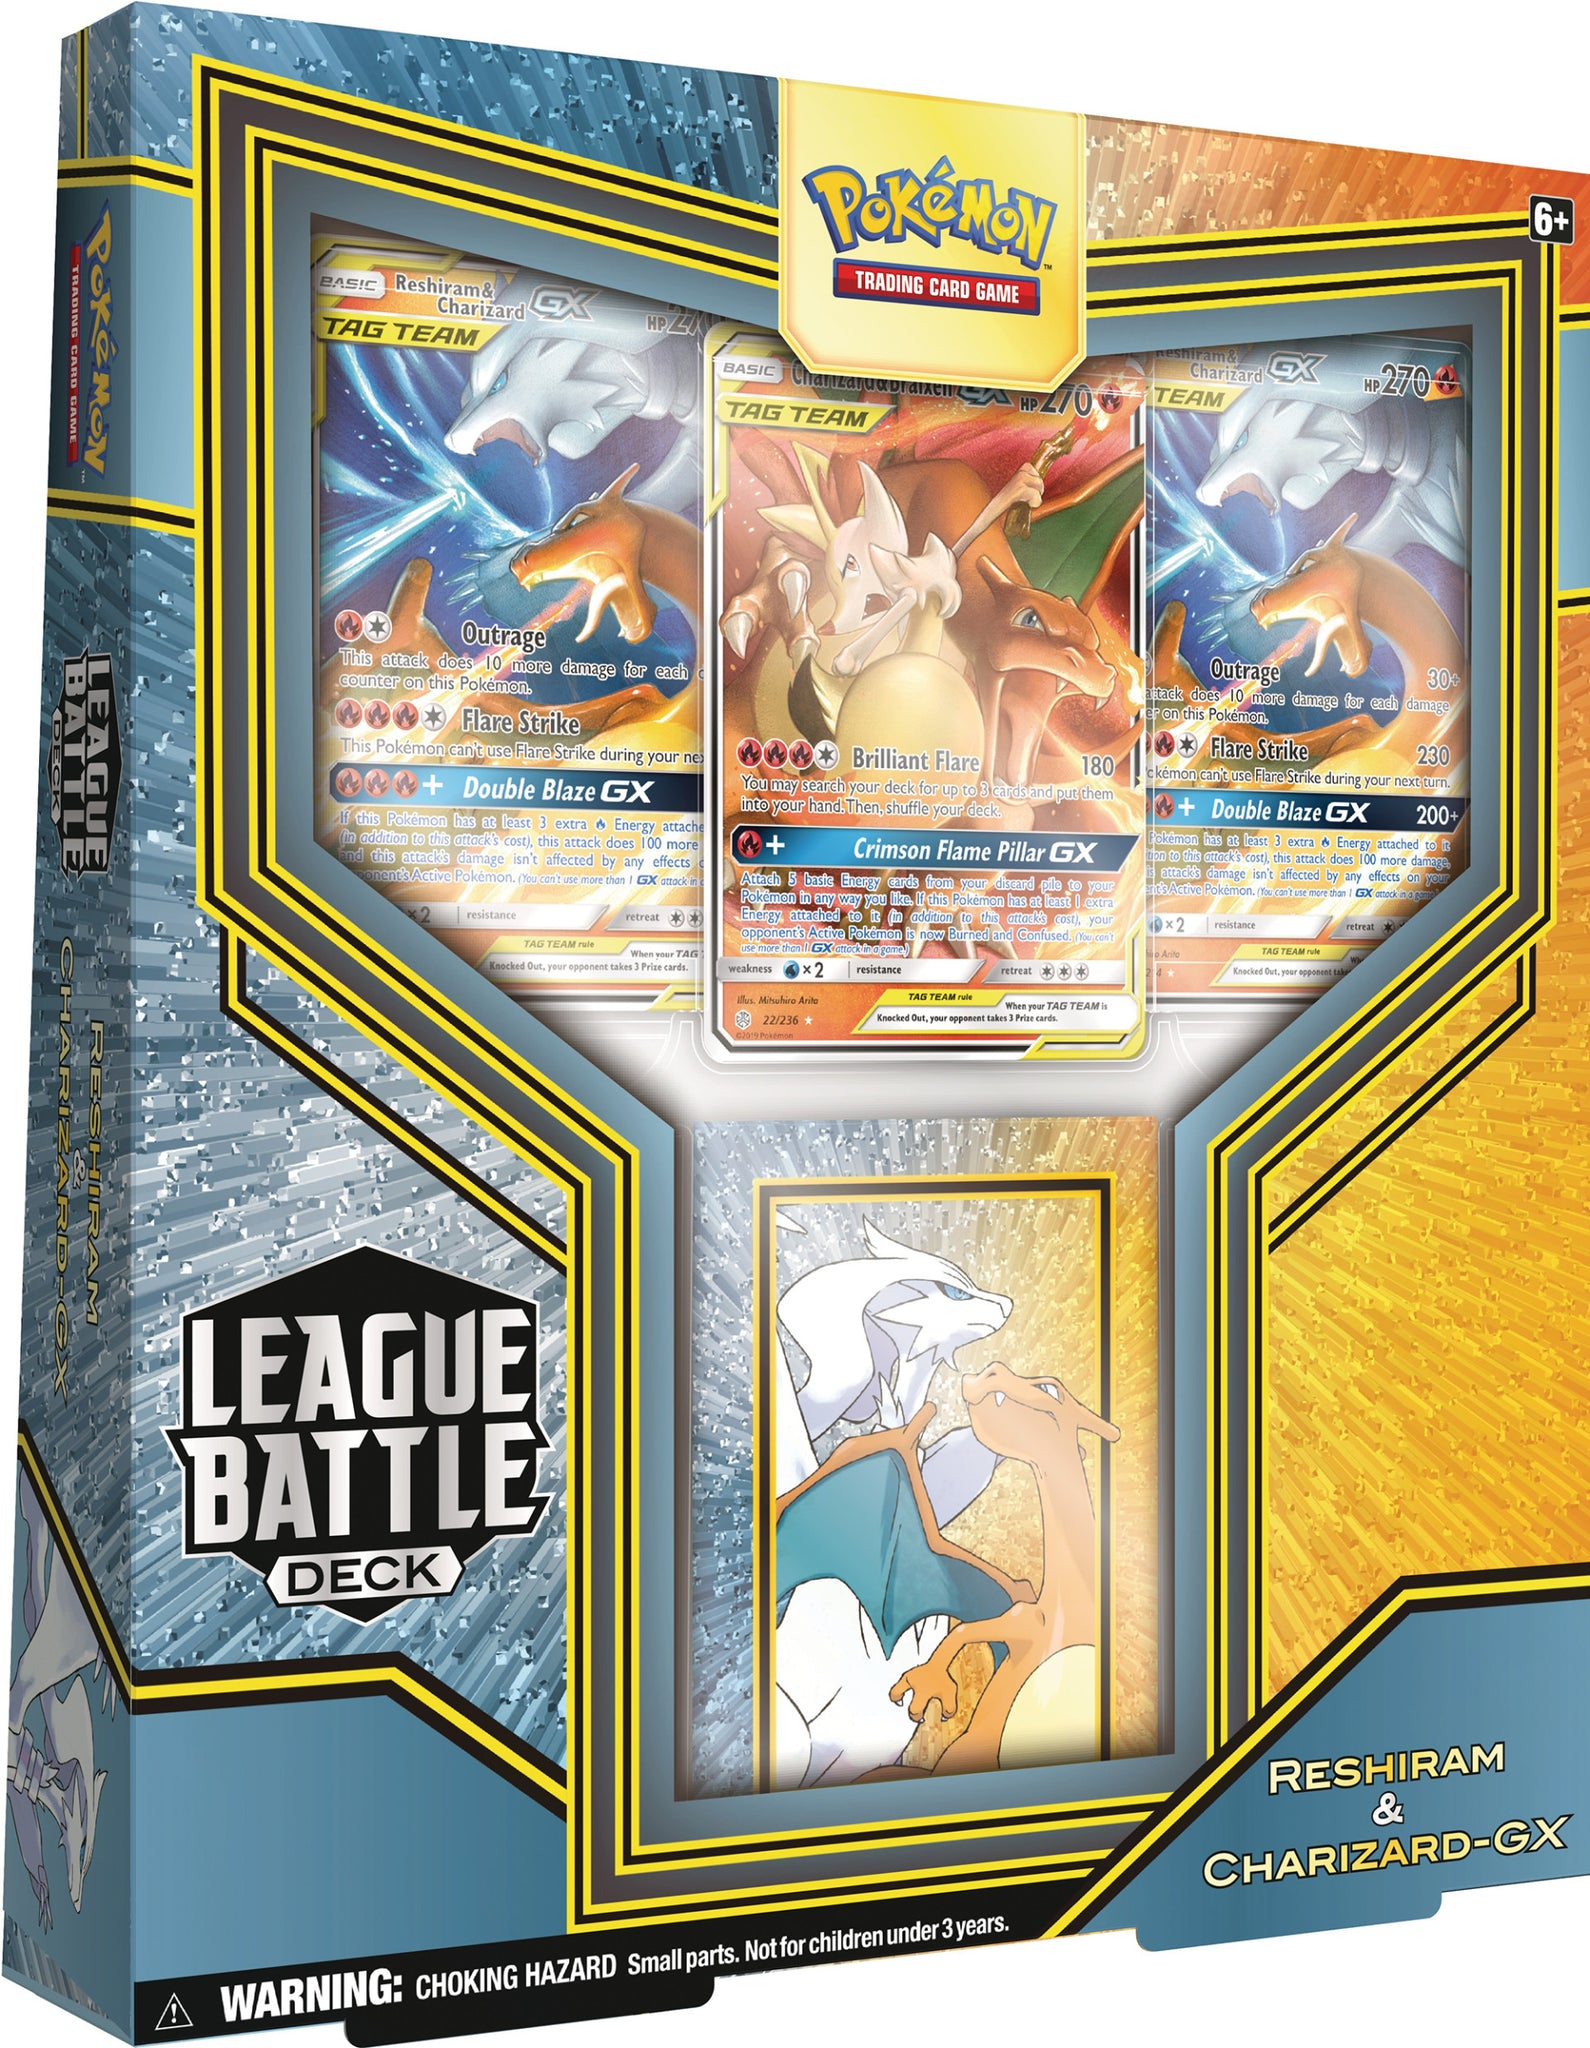 Pokemon League Battle Deck Rashiram & Charizard GX